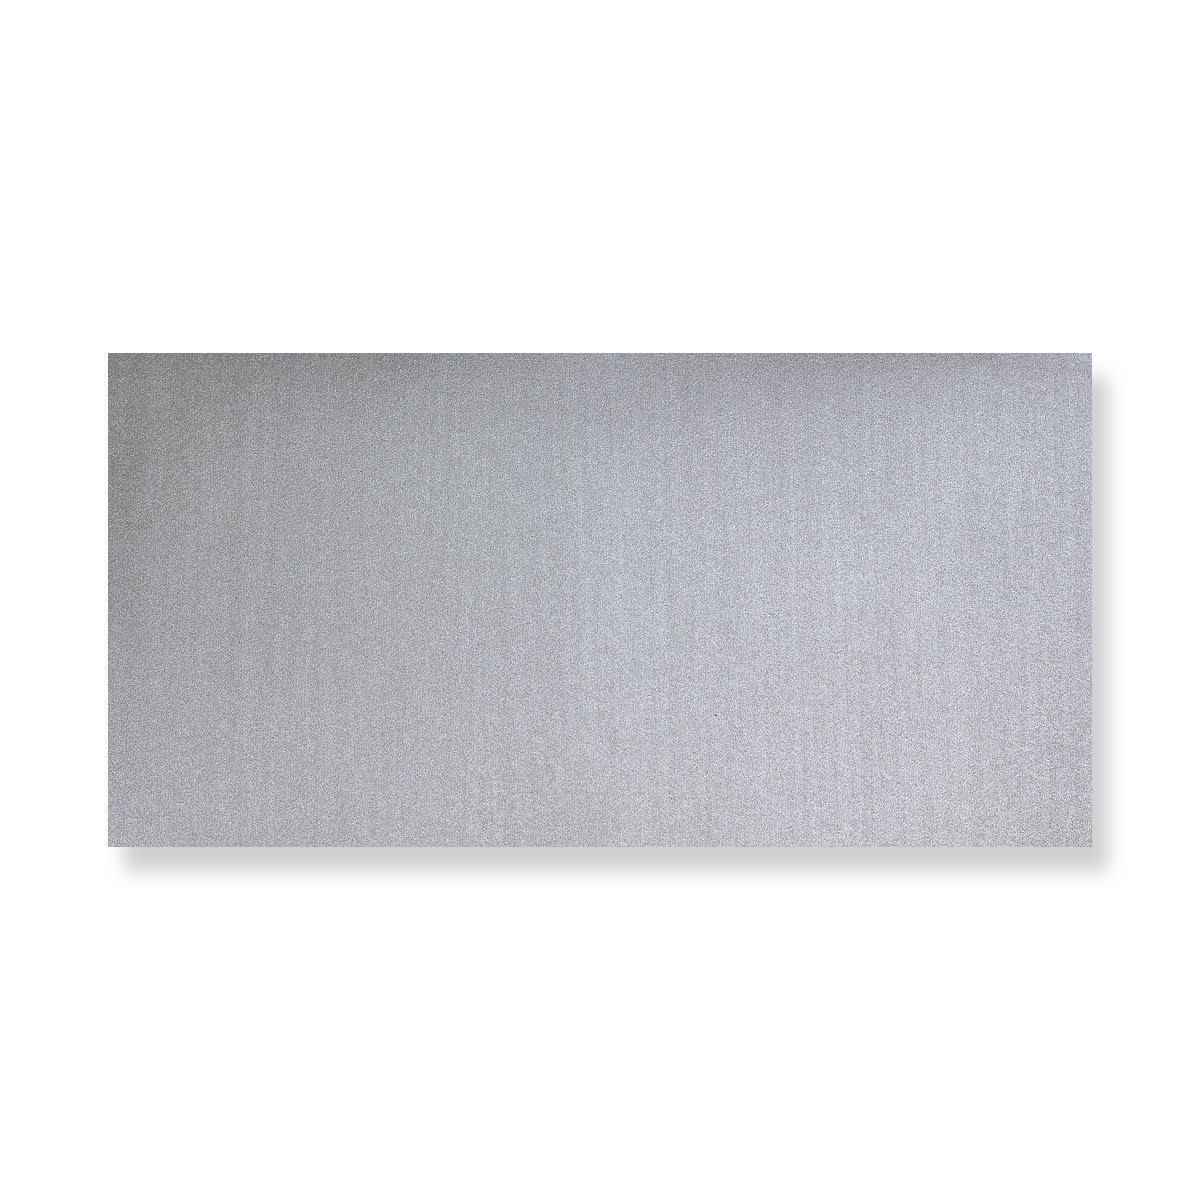 DL SILVER V-FLAP PEEL AND SEAL ENVELOPES